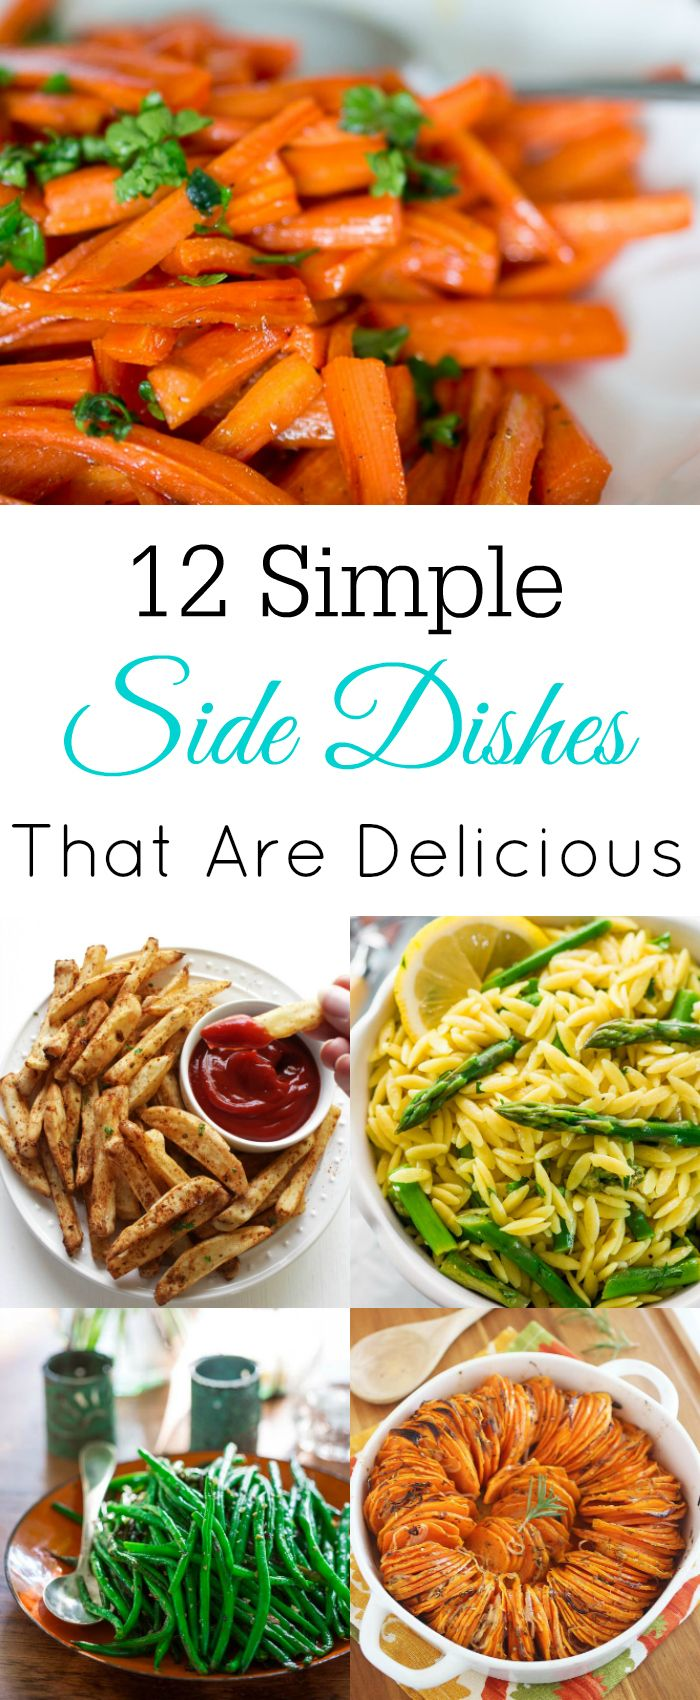 Simple side dishes that are delicious simple side dishes dishes 12 simple side dishes that are delicious easy side dishes simple vegetables easy forumfinder Image collections